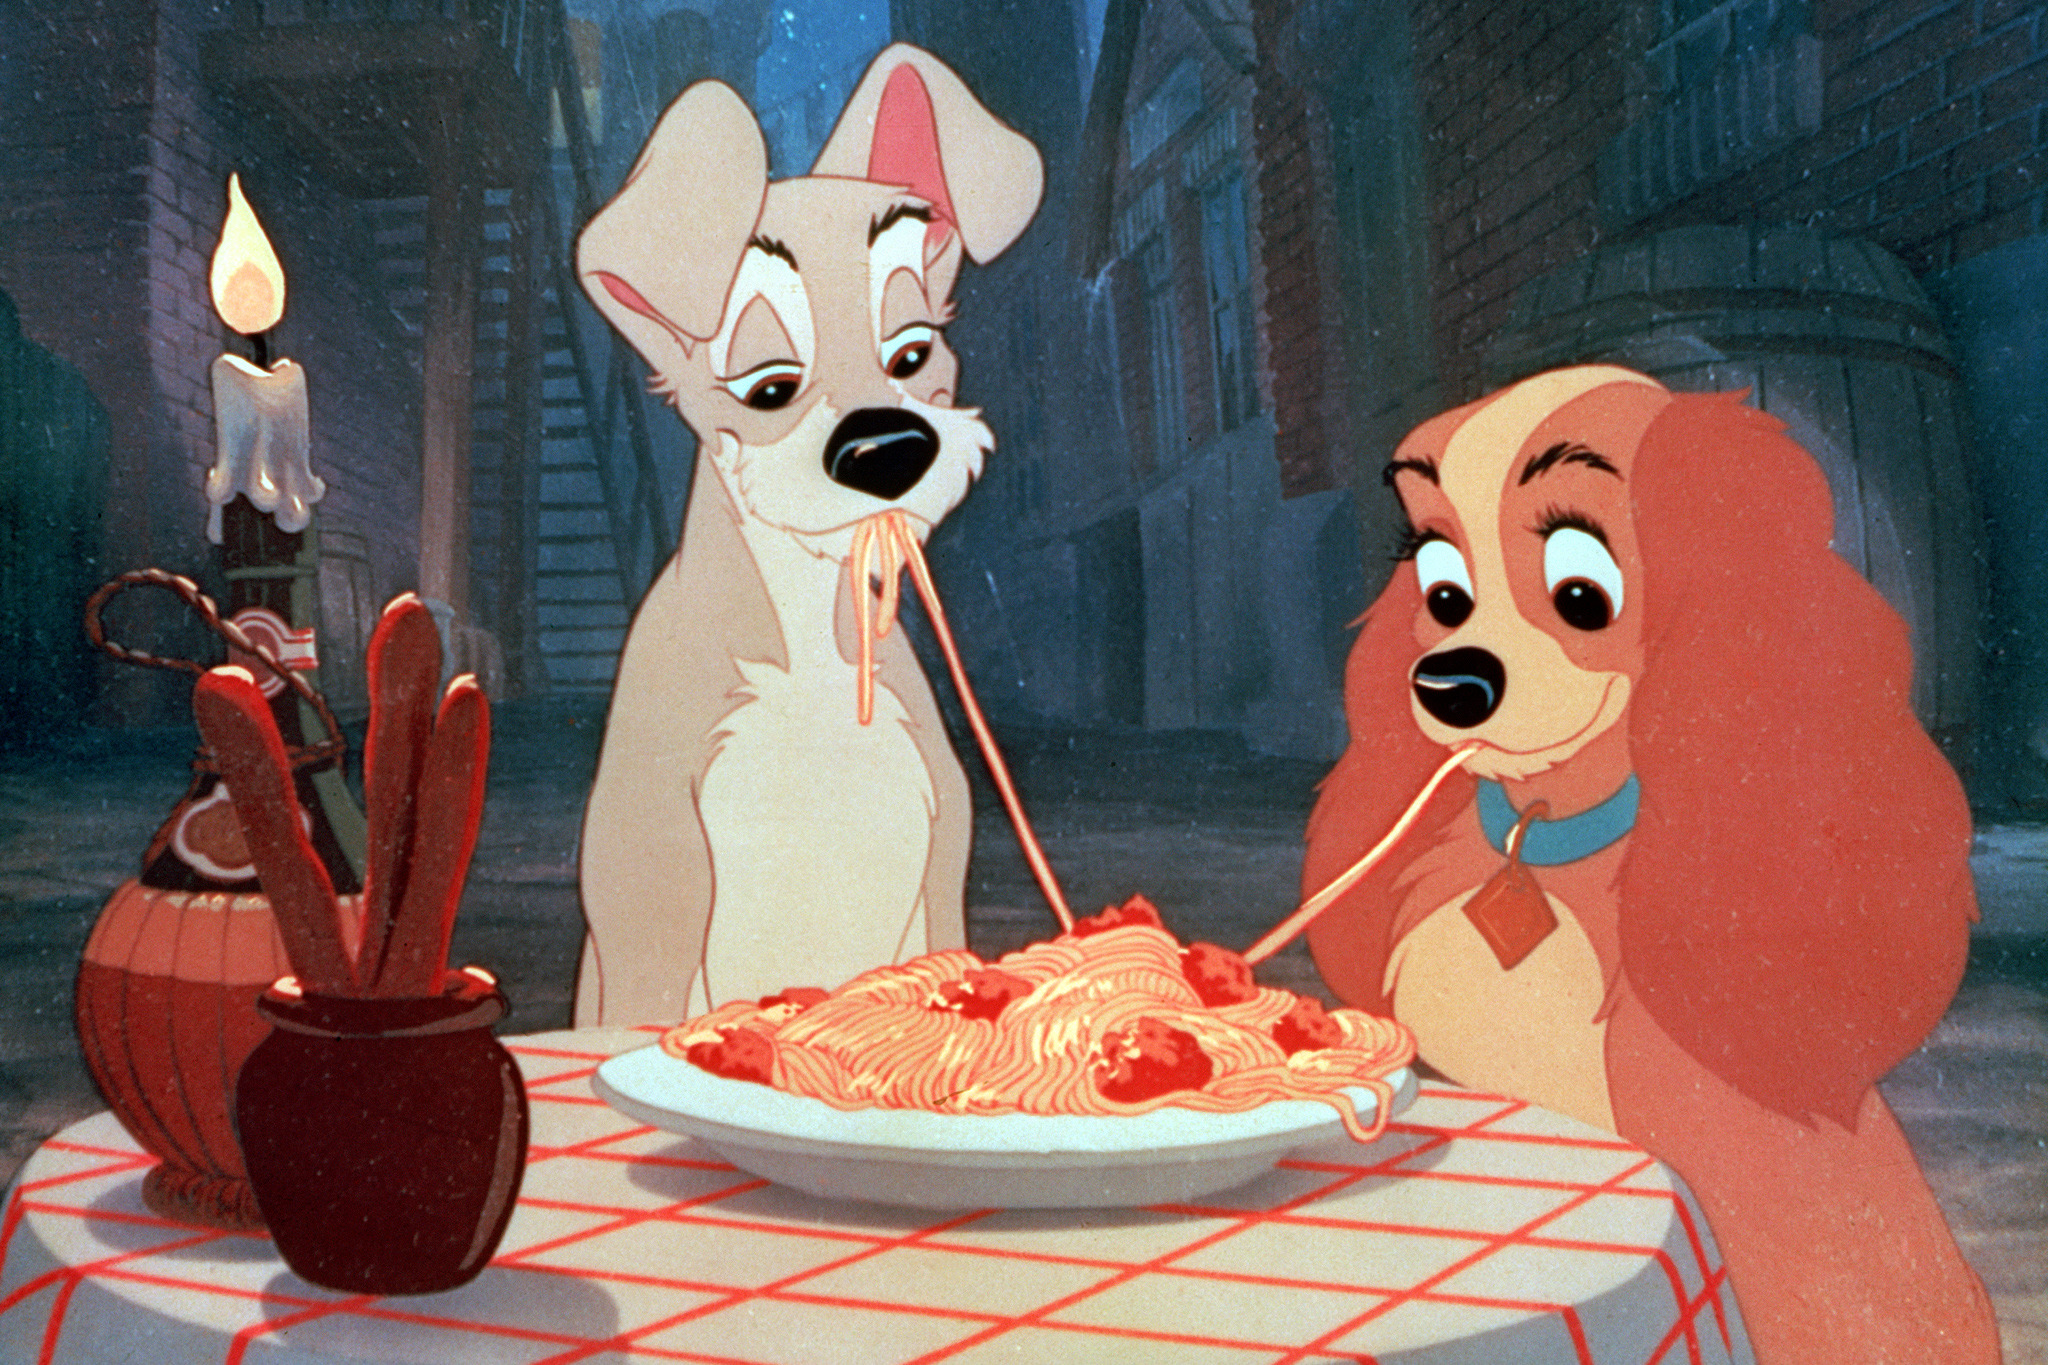 The 100 best animated movies: 60–51